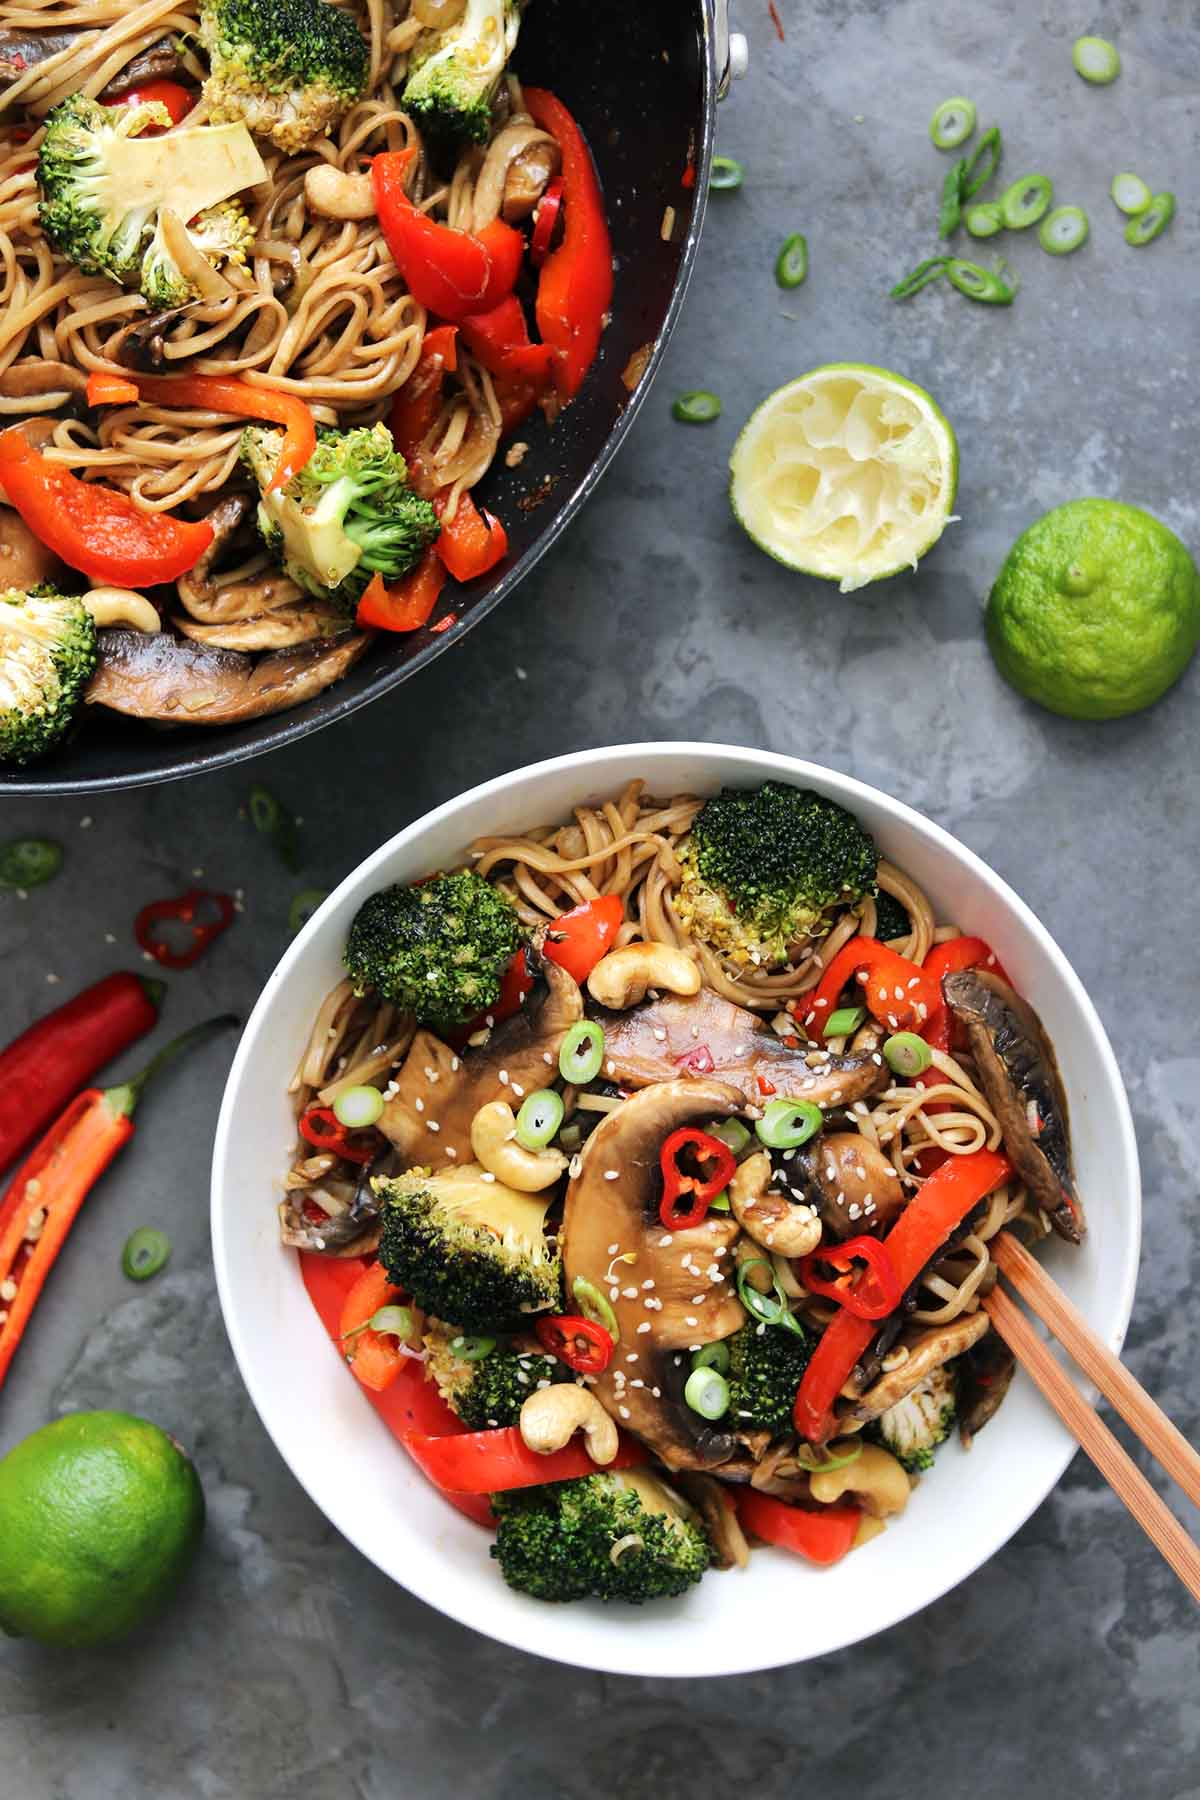 mushrooms and broccoli with spring onion, chilli and noodles and lime slices